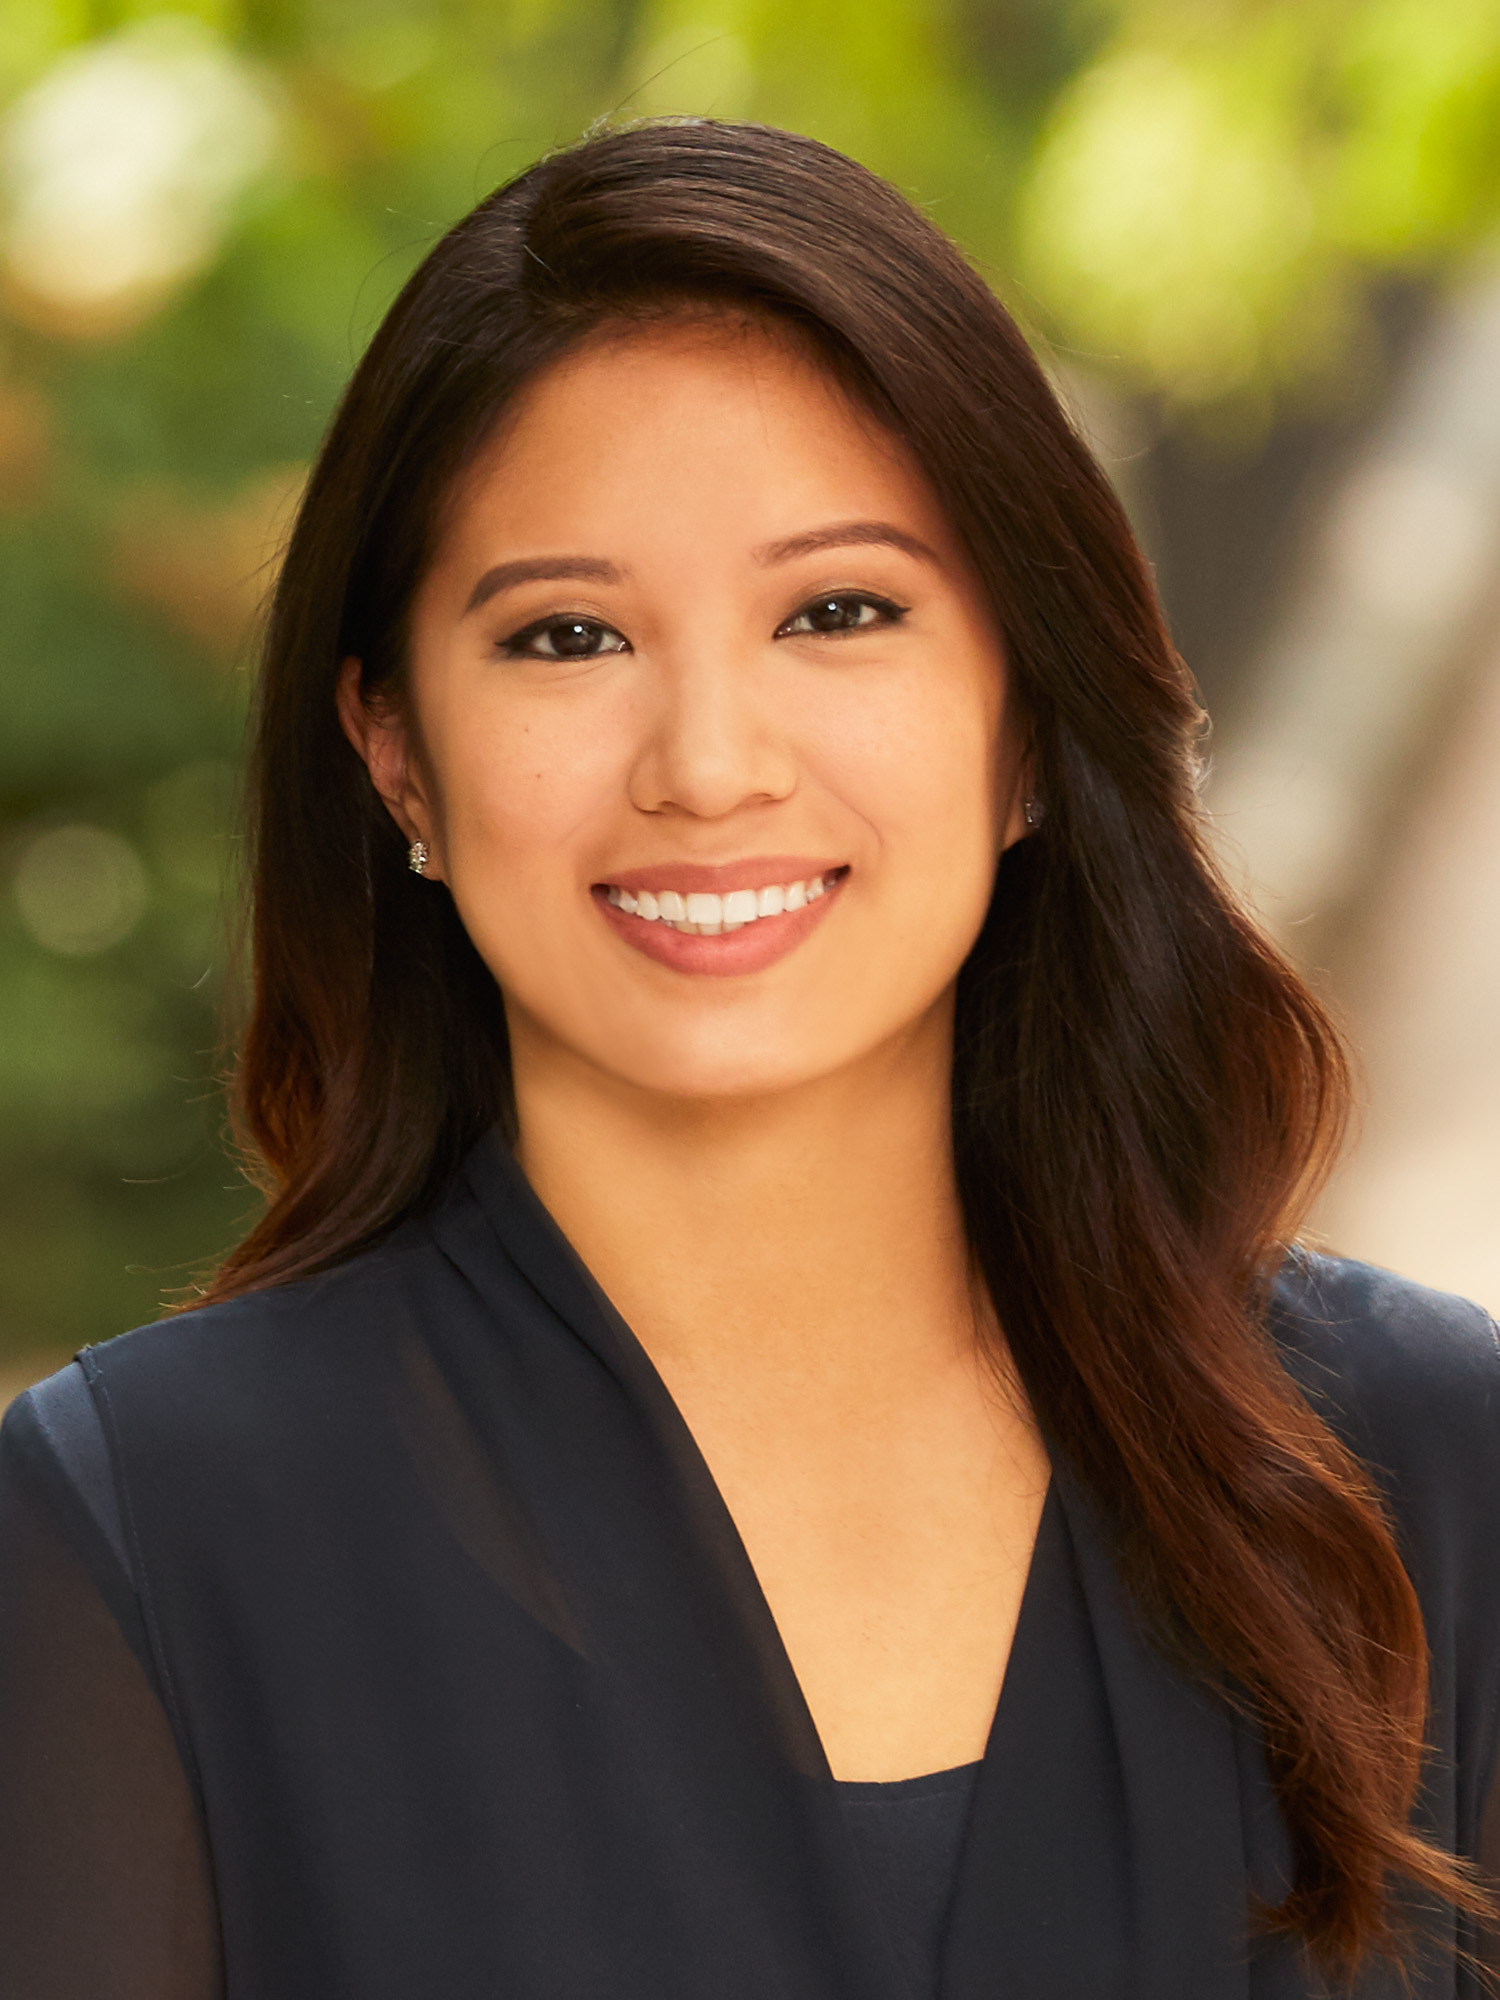 Juestina Lu, a top realtor in New York City for Corcoran, a real estate firm in West Side.